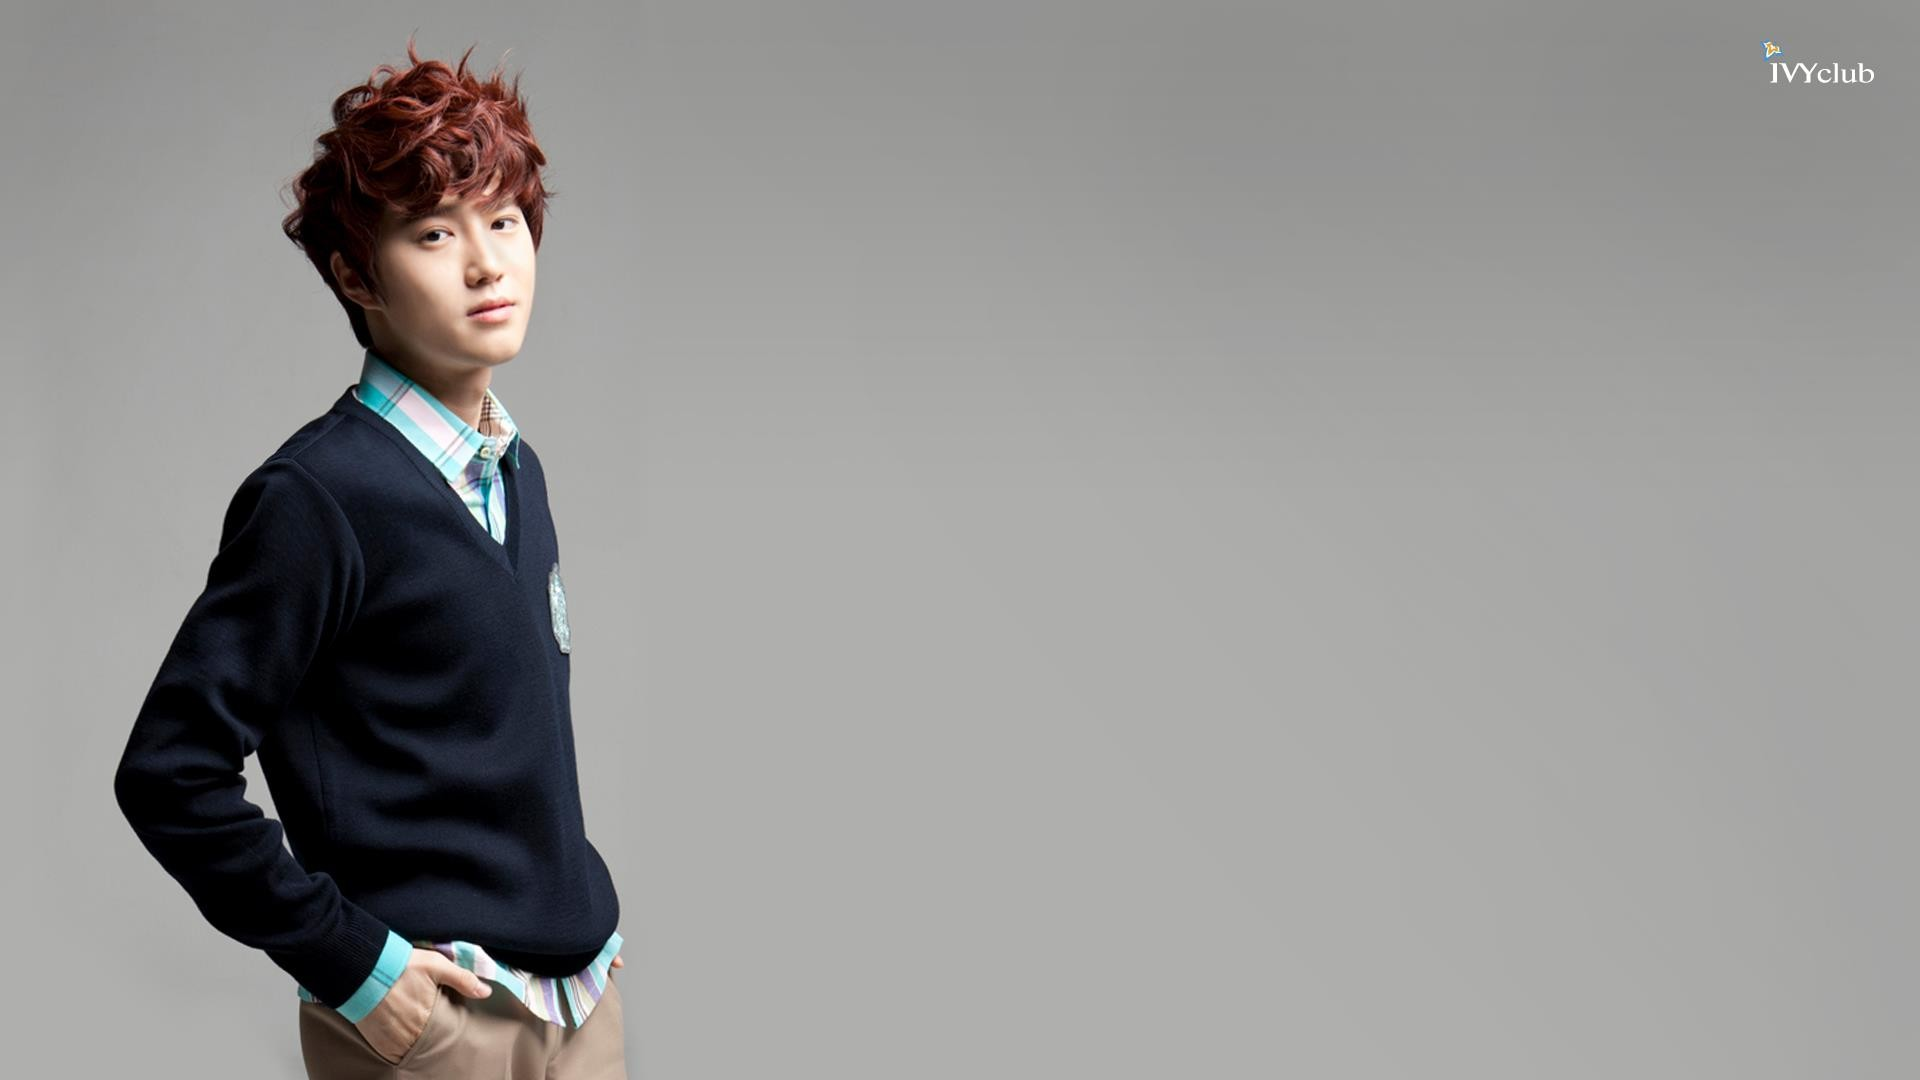 suho images Suho HD wallpaper and background photos